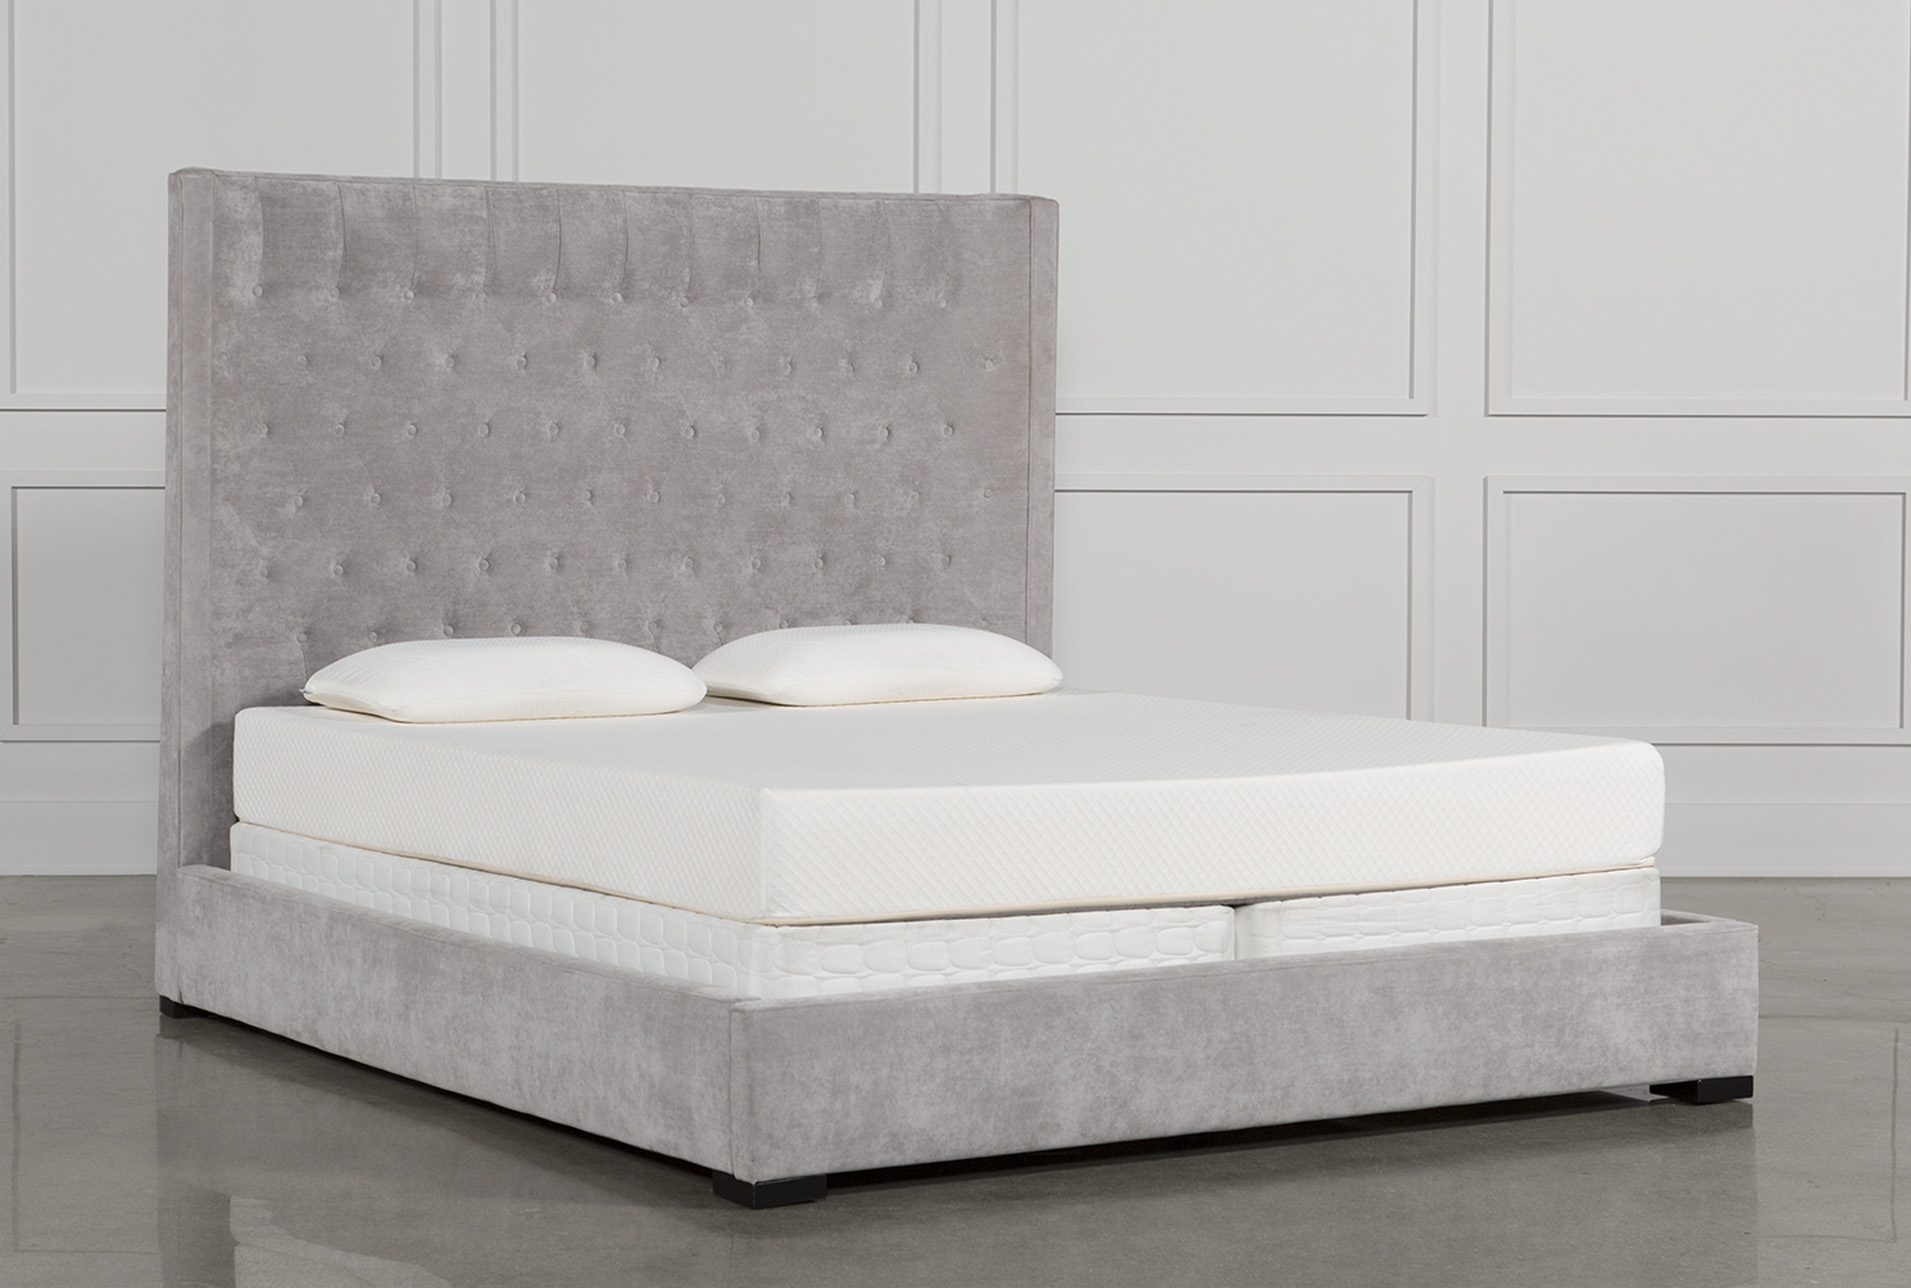 Simple Tufted Bed Frame Ideas